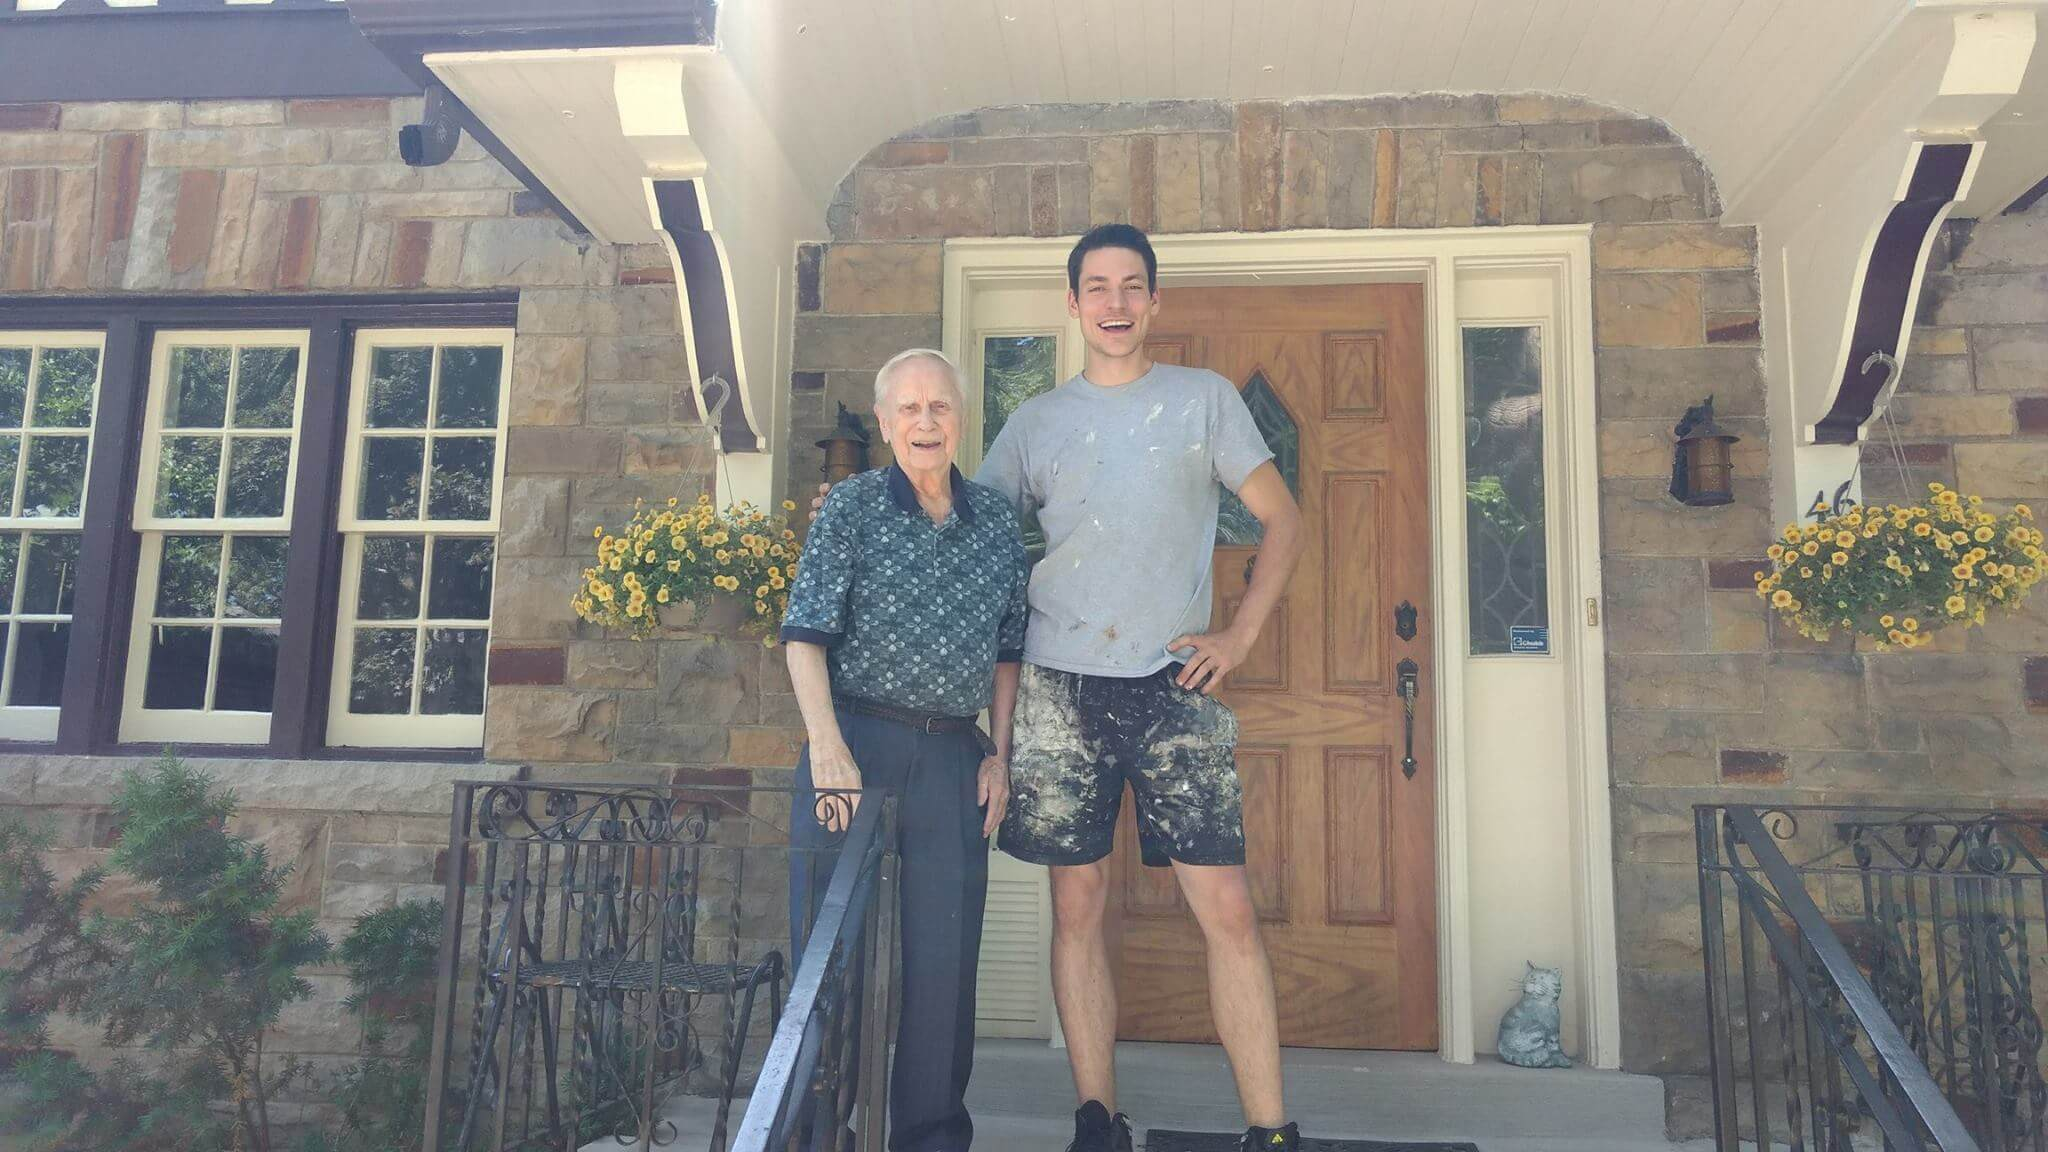 Michael with Home Painting & Exterior Painting Client